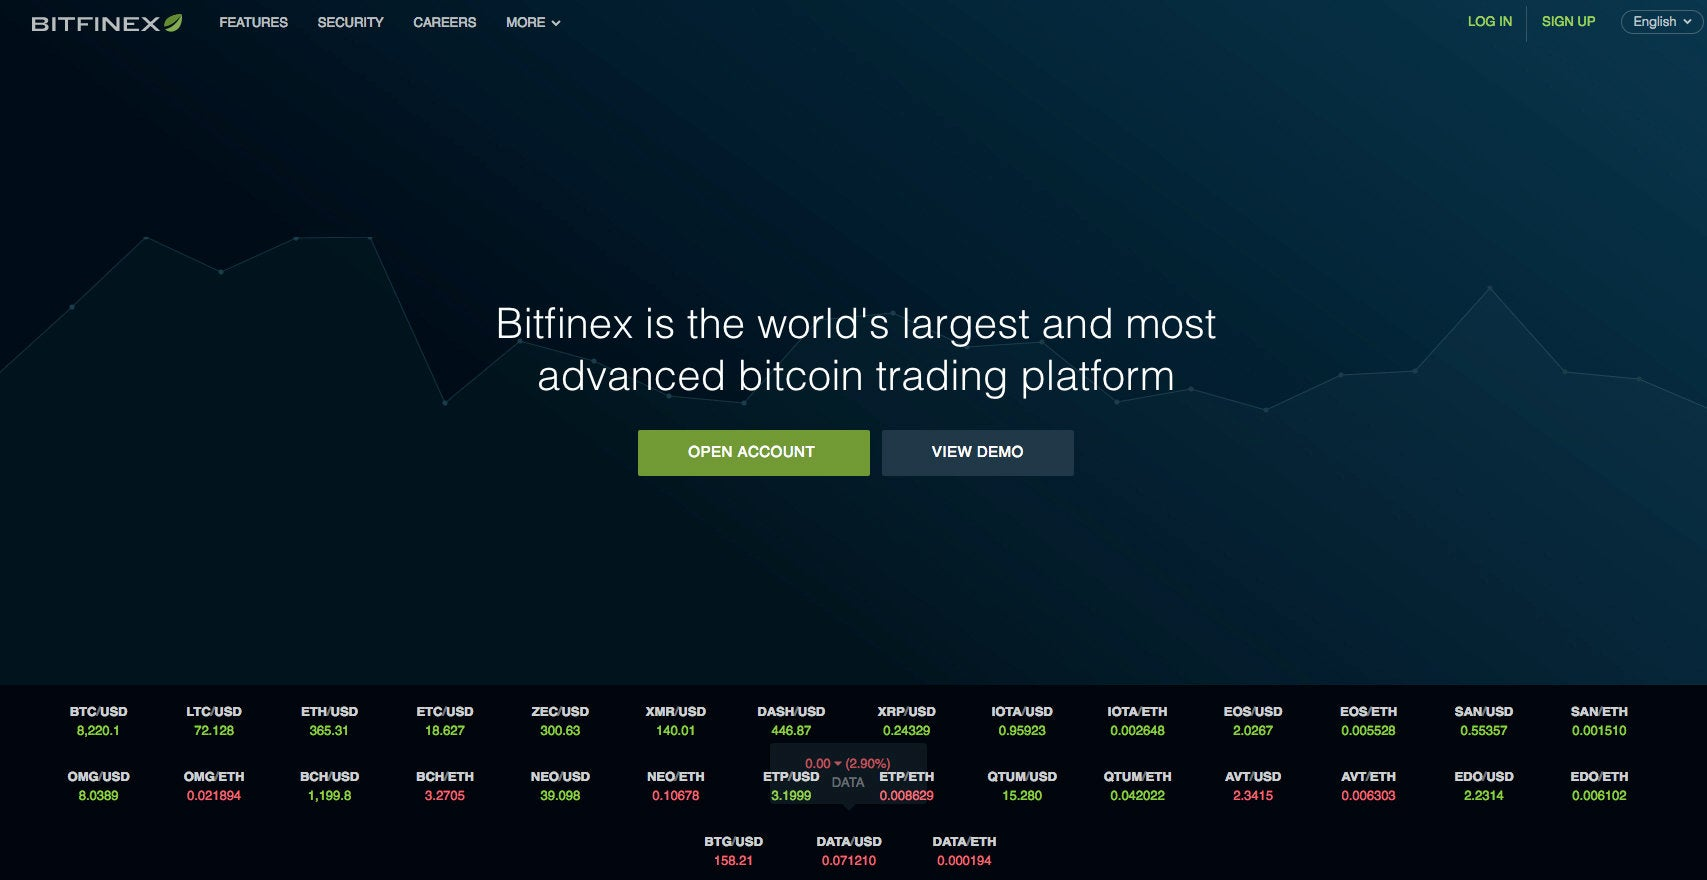 08-03 Warning Signs About Another Giant Bitcoin Exchange